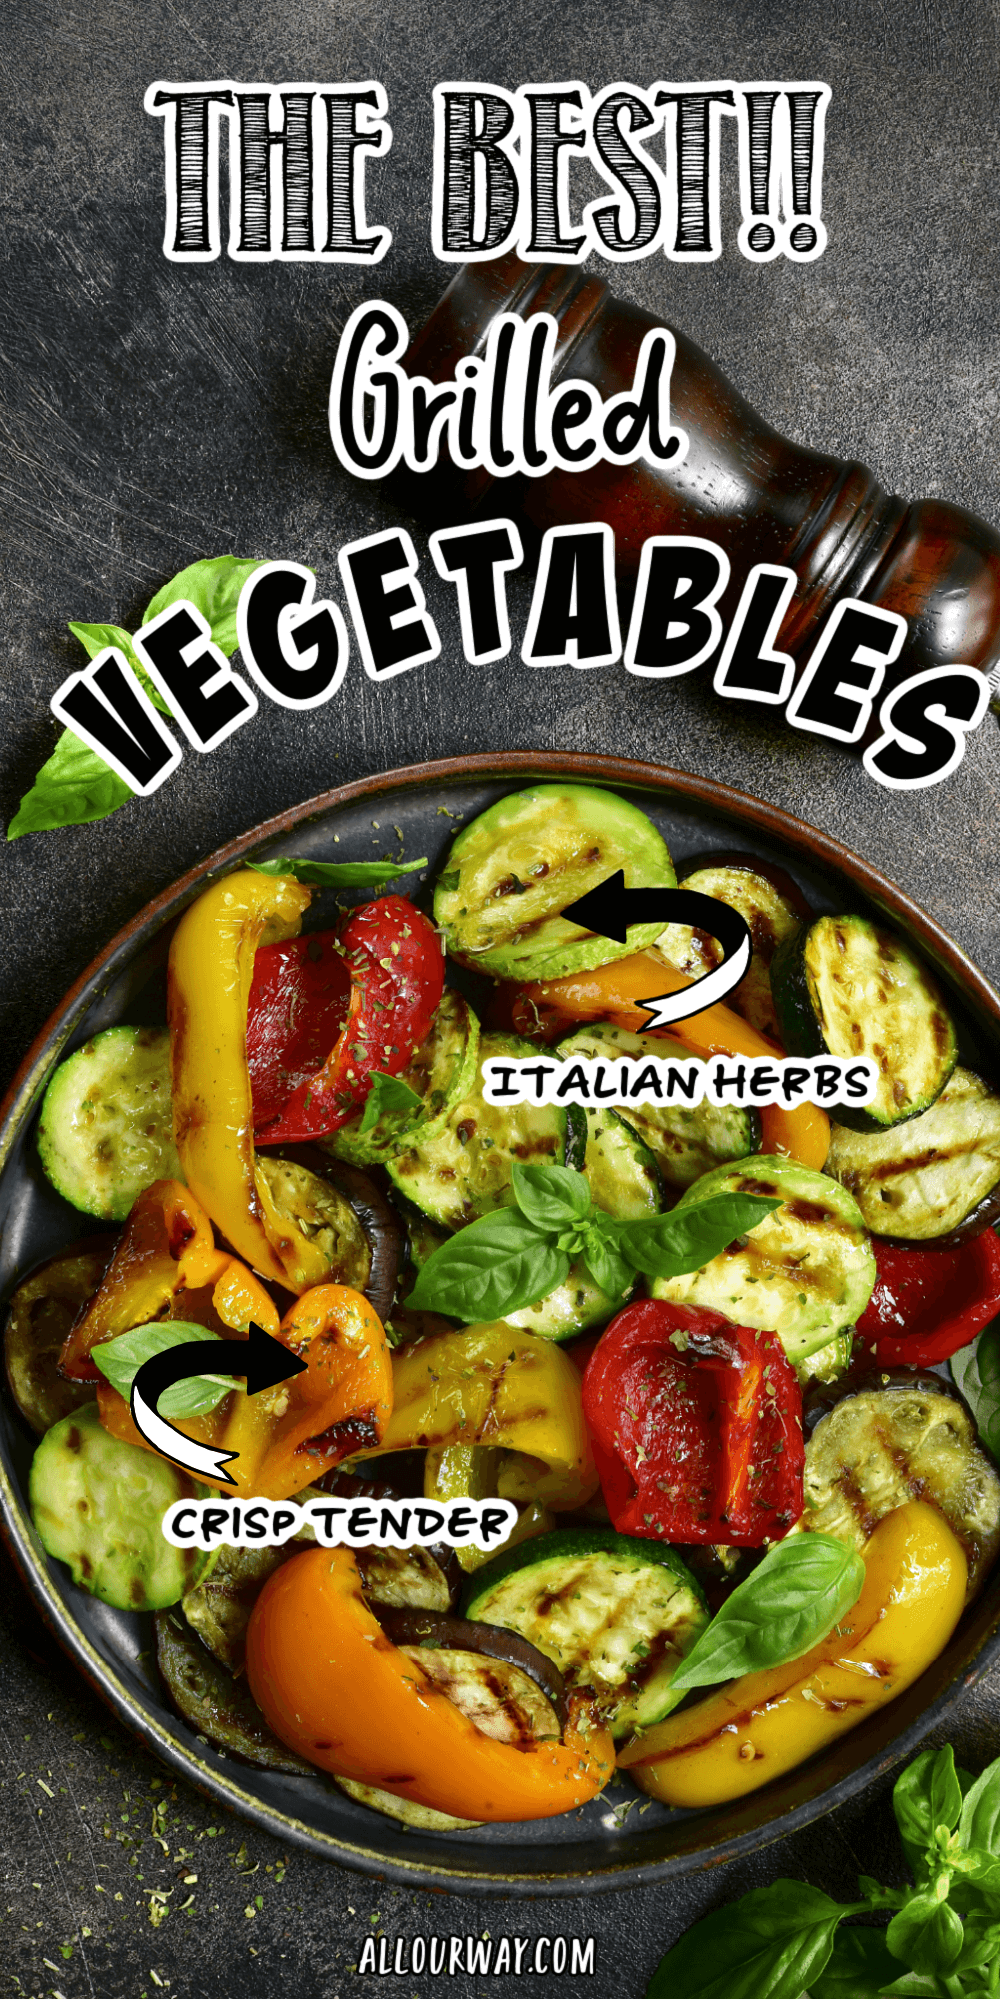 Italian grilled vegetables transforms ordinary veggies into a spectacular dish by cooking them until they are crisp tender. They are served with a tangy lemon vinaigrette and finished with a sprinkle of fresh basil.